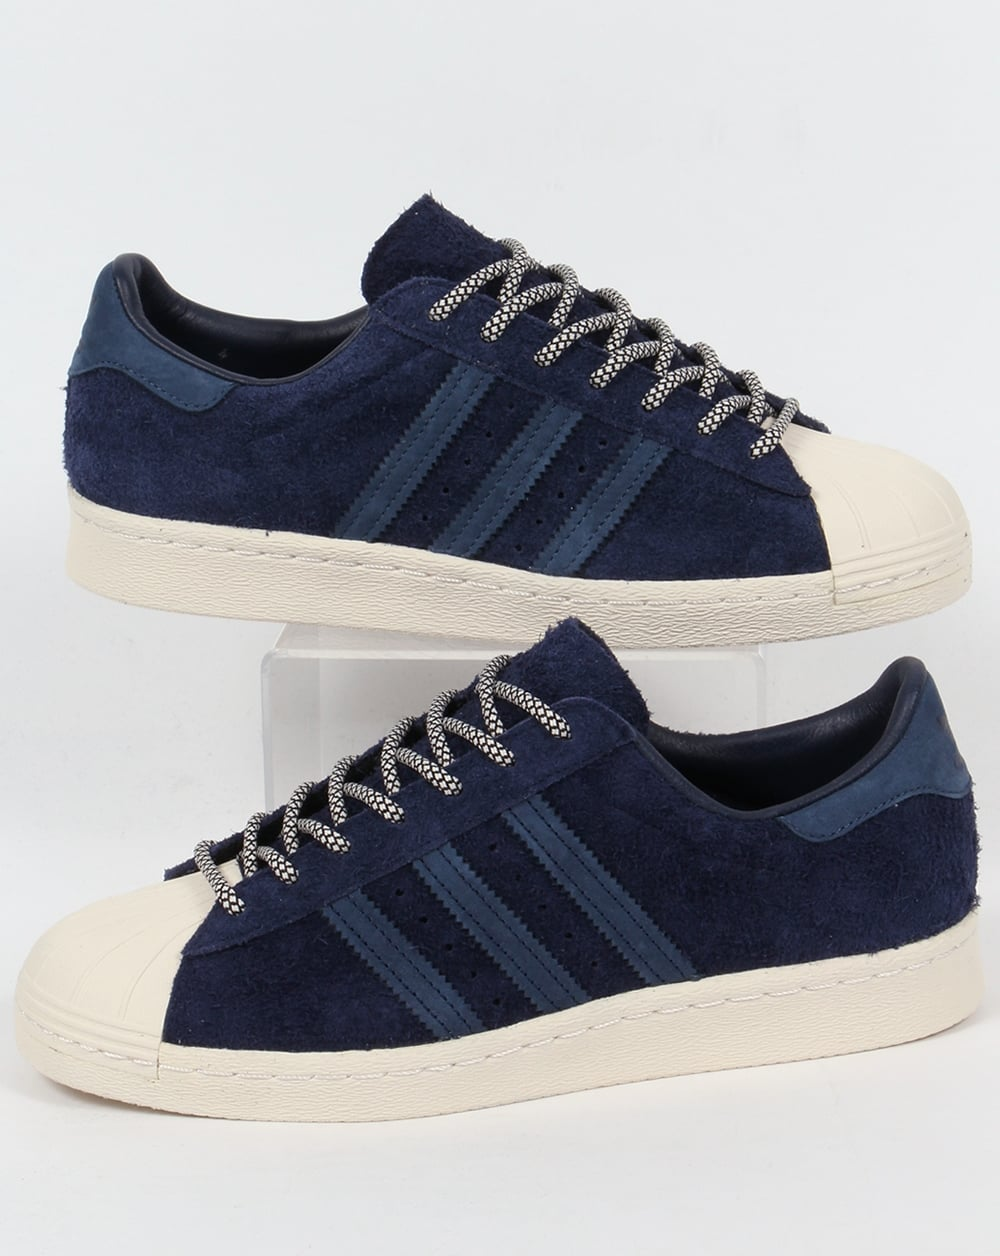 adidas superstar 80s trainers navy mineral blue white originals shell toe shoe. Black Bedroom Furniture Sets. Home Design Ideas